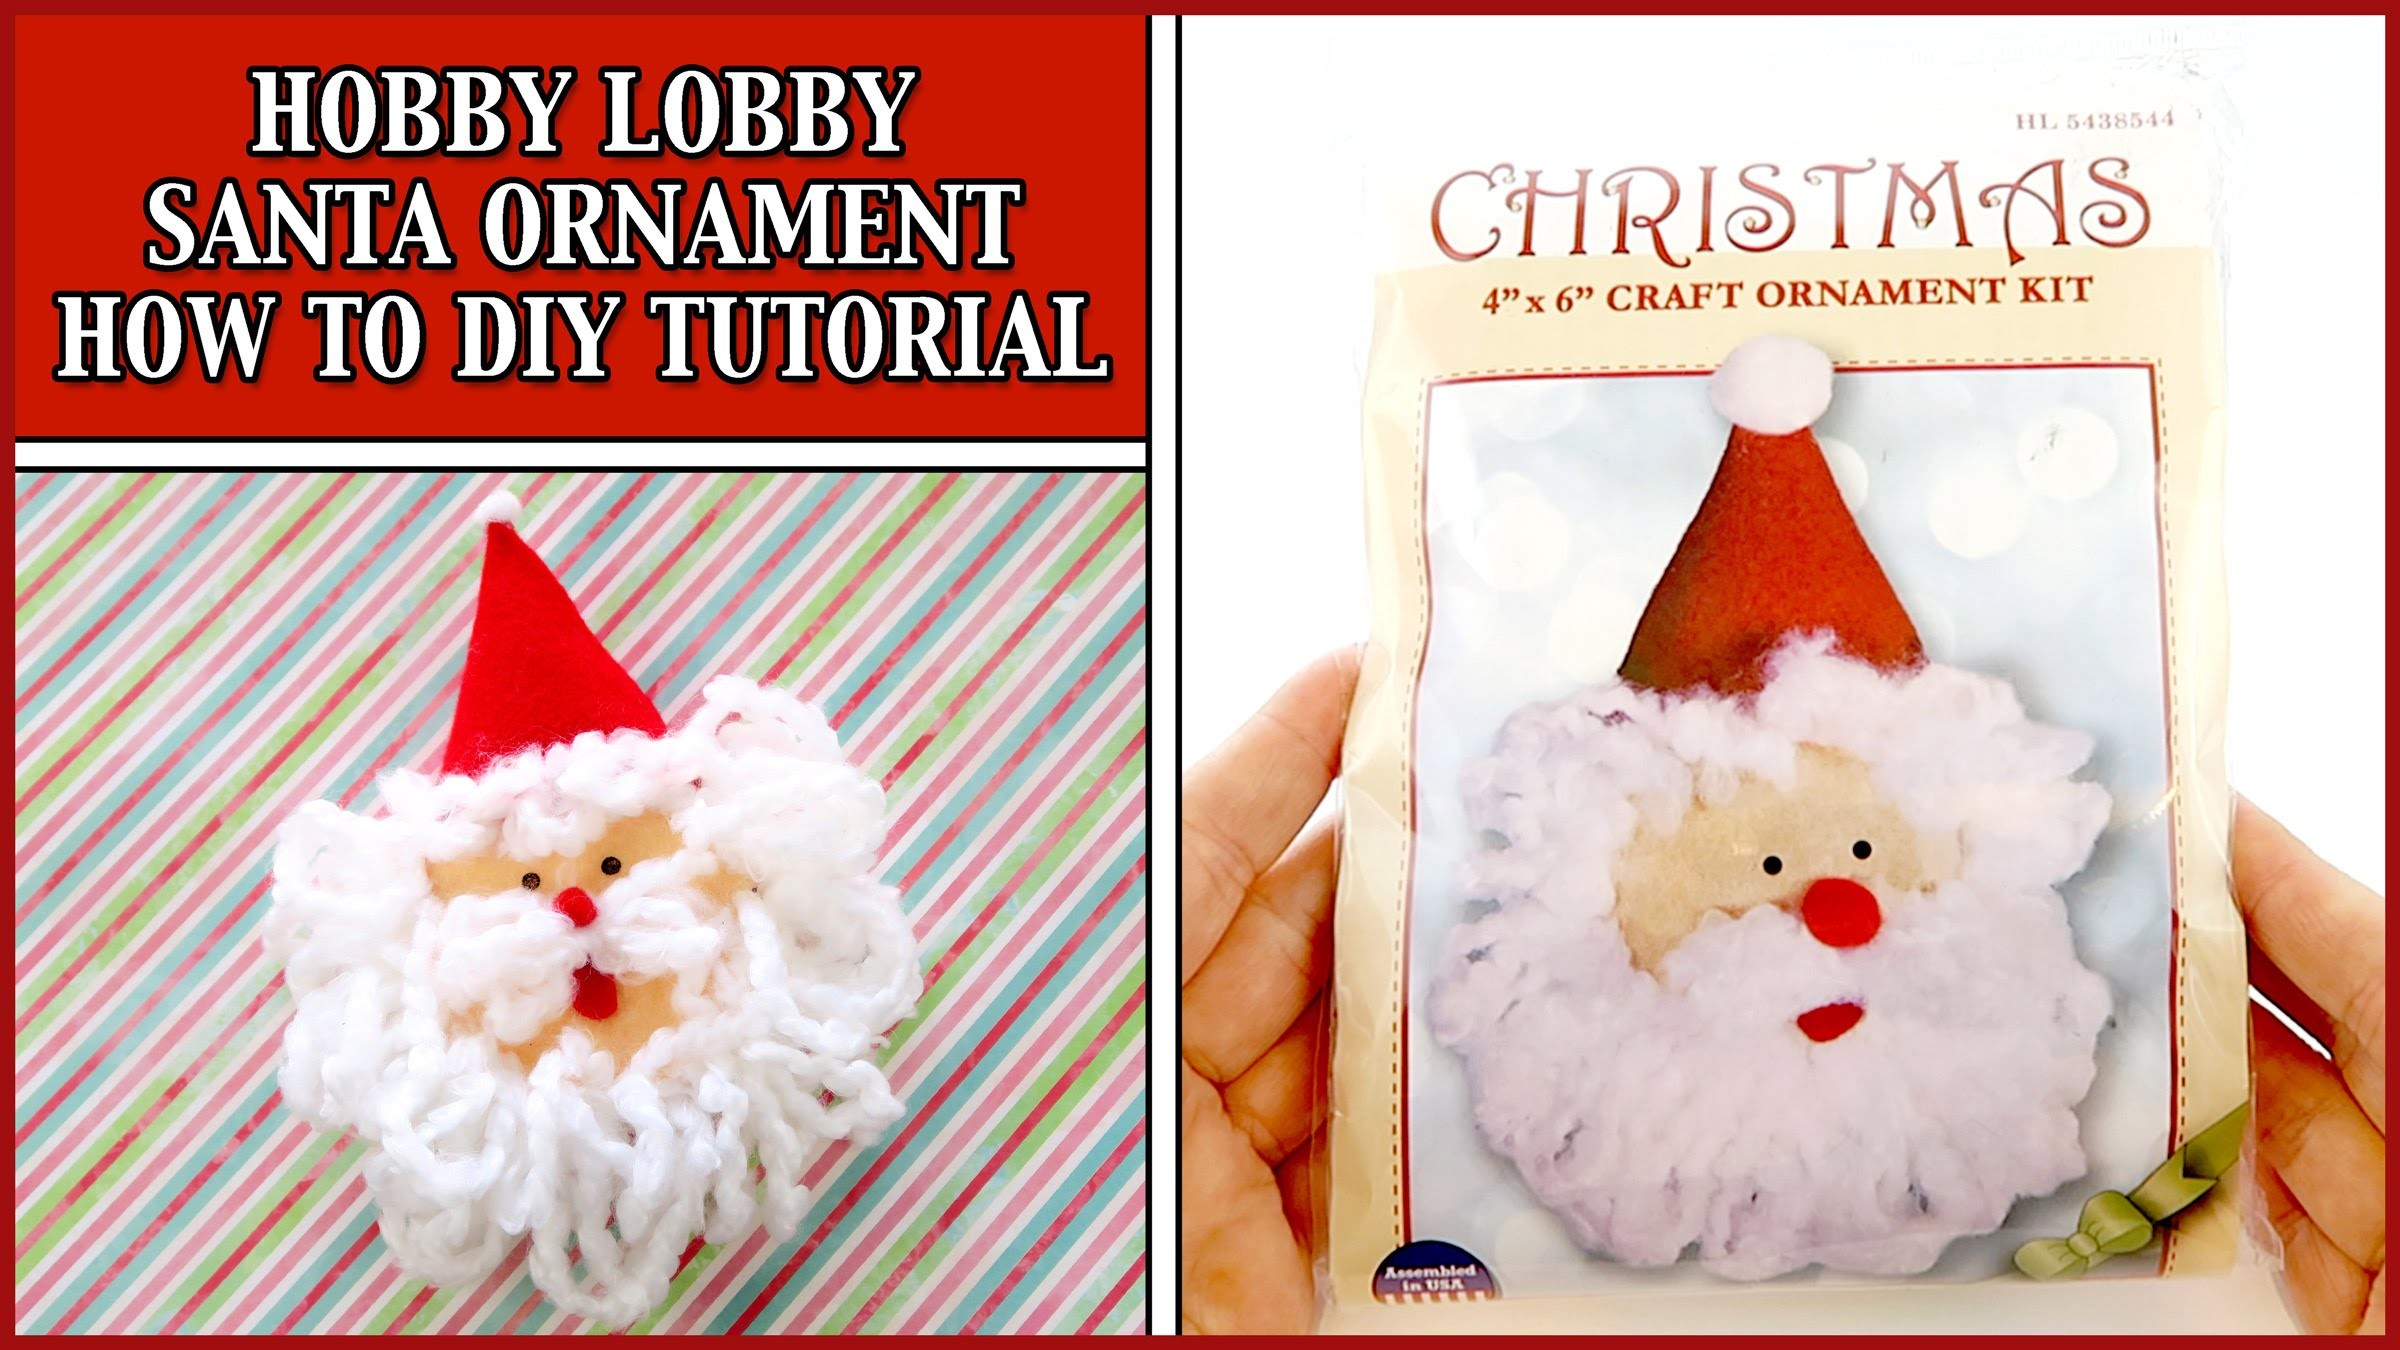 HOBBY LOBBY - SANTA ORNAMENT CRAFT KIT - HOW TO DIY TUTORIAL